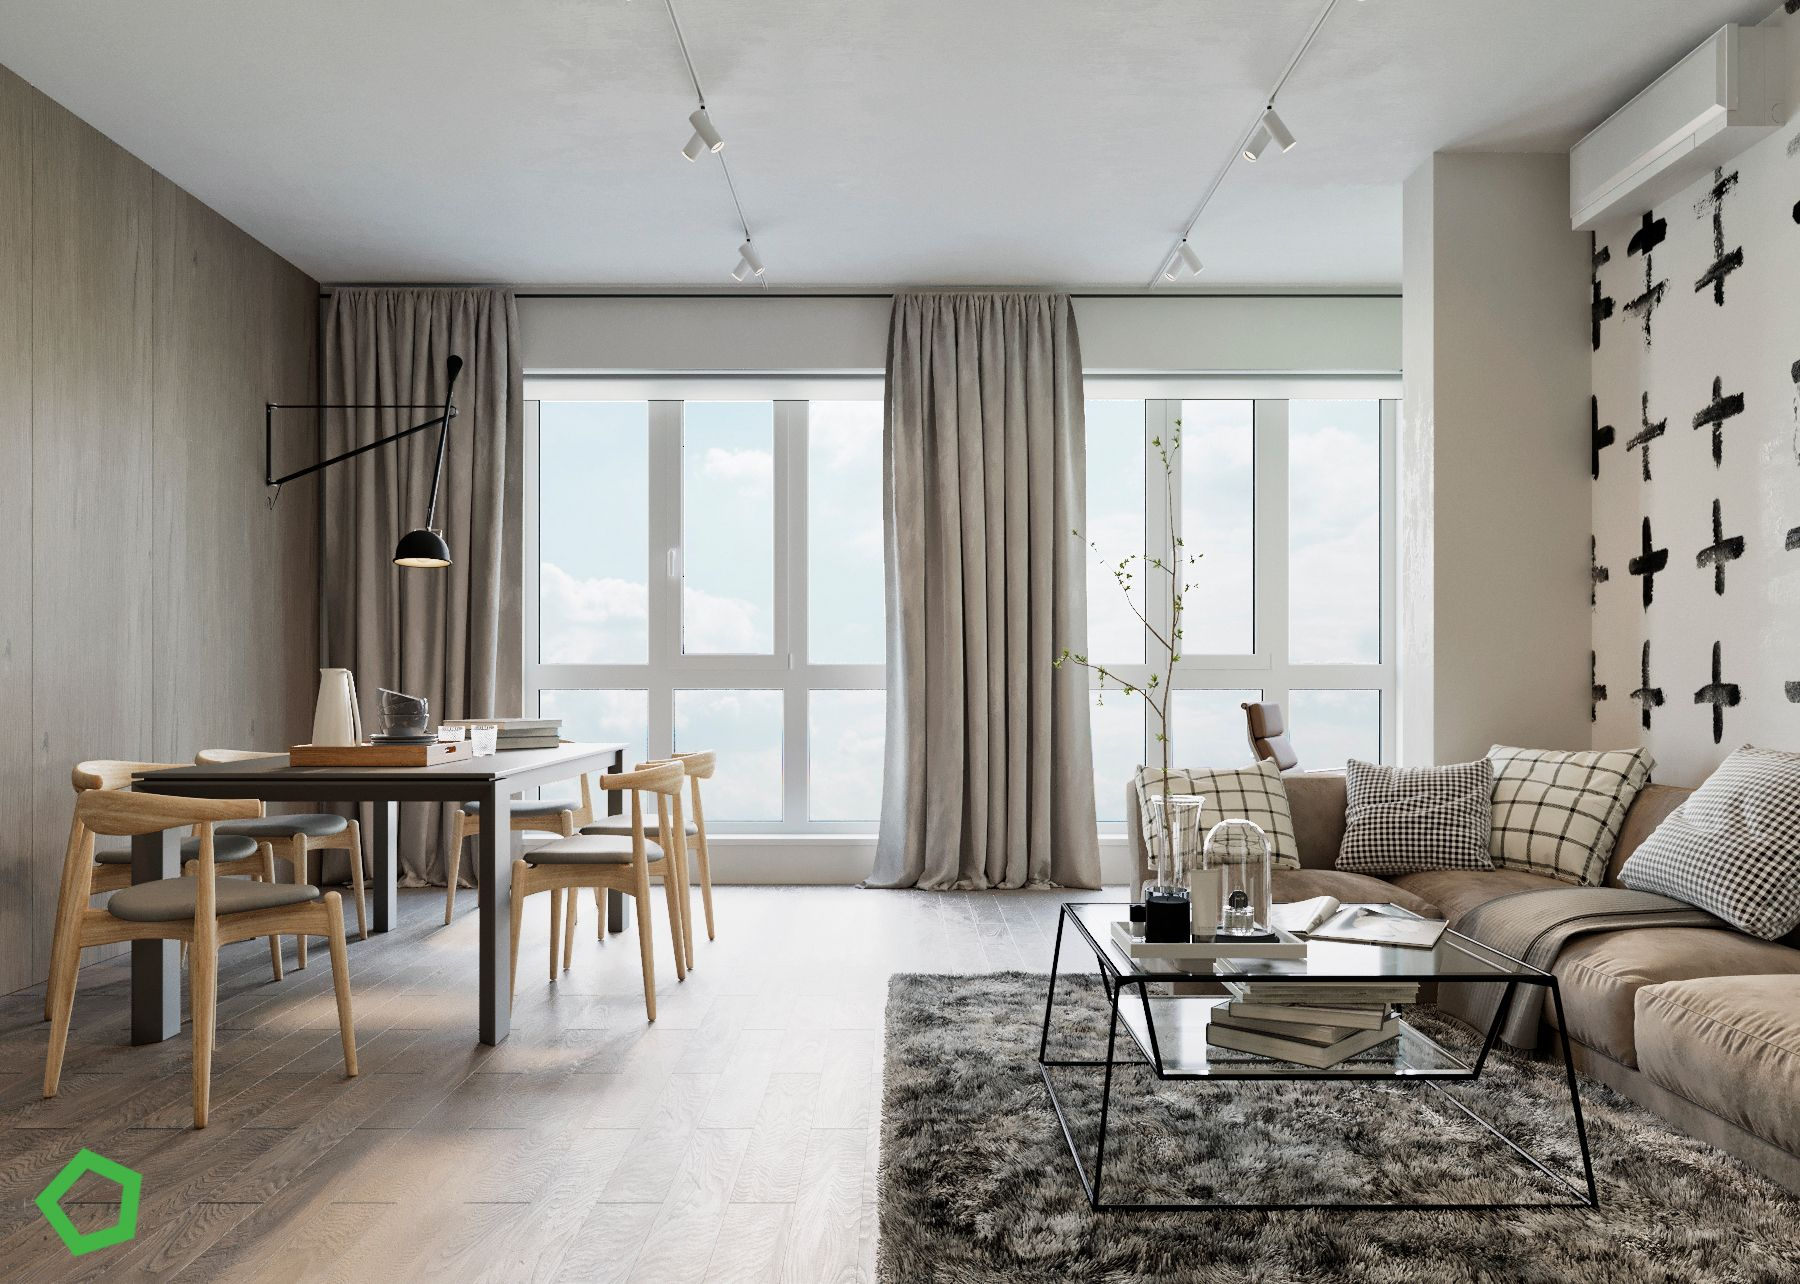 Balancing efficiency with comfort is a constant challenge for designers but these three single bedroom apartments serve as inspiring examples of success